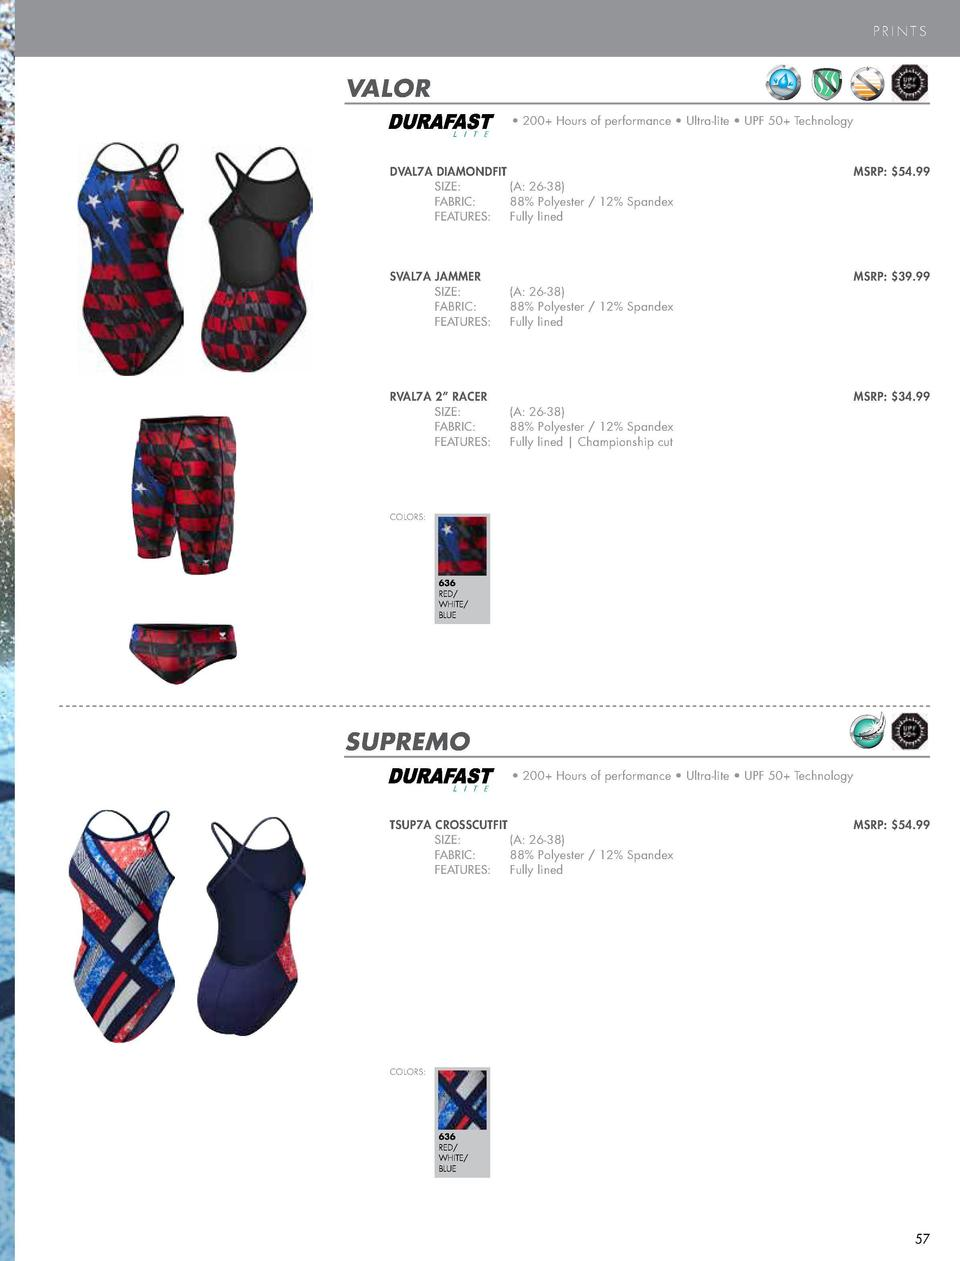 PERFORMANCE SWIM  PRINTS  VALOR     200  Hours of performance     Ultra-lite     UPF 50  Technology  COLOR  L I T E  BLACK...